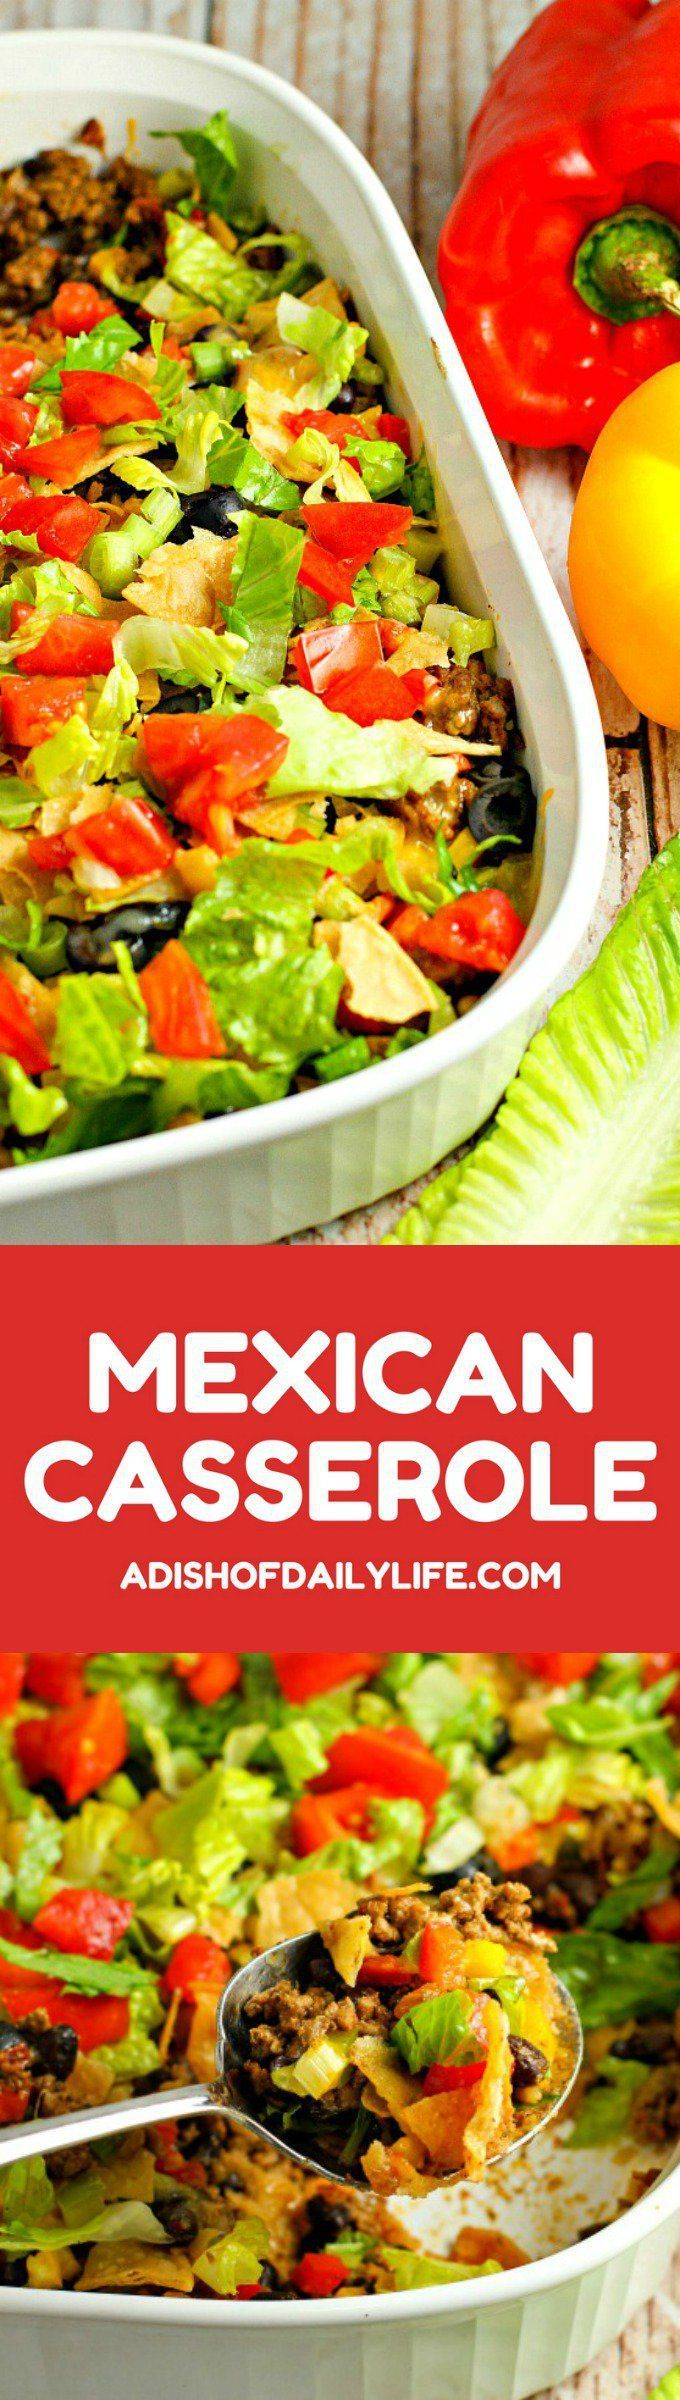 This easy Mexican Casserole has all the taco fixings that your family loves in a comforting casserole. It's perfect for Taco Tuesday, Mexican night or any night you need to get dinner on the table quickly!